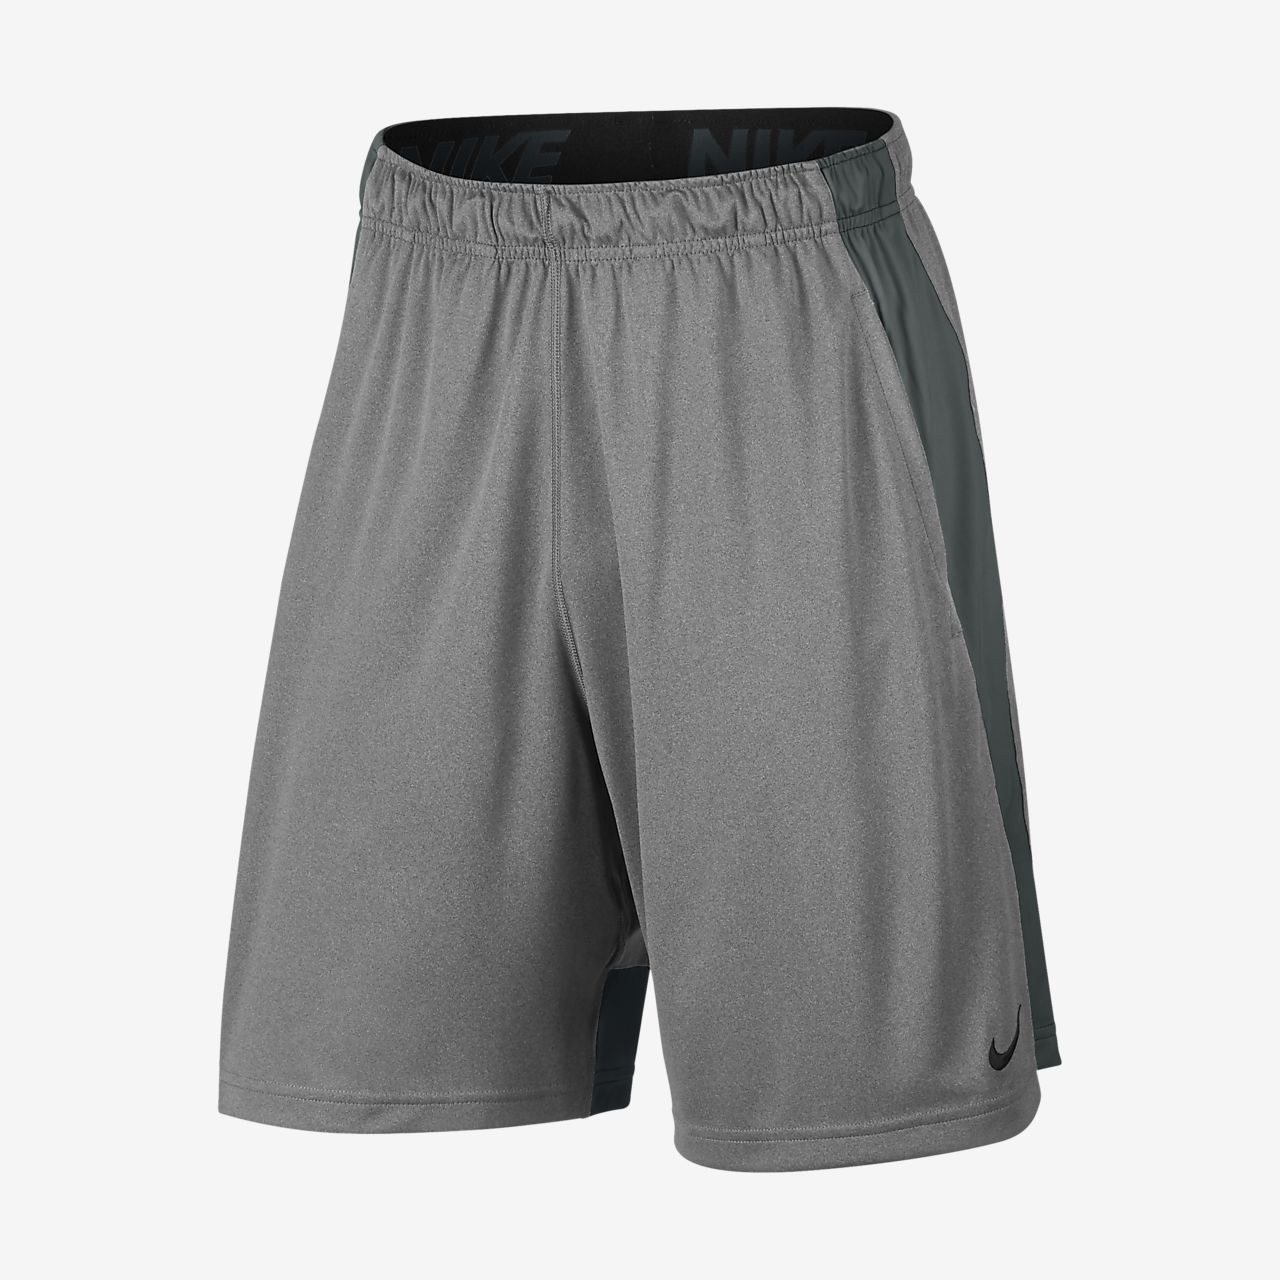 "Nike Dry Men's 9"" (23cm approx.) Training Shorts"